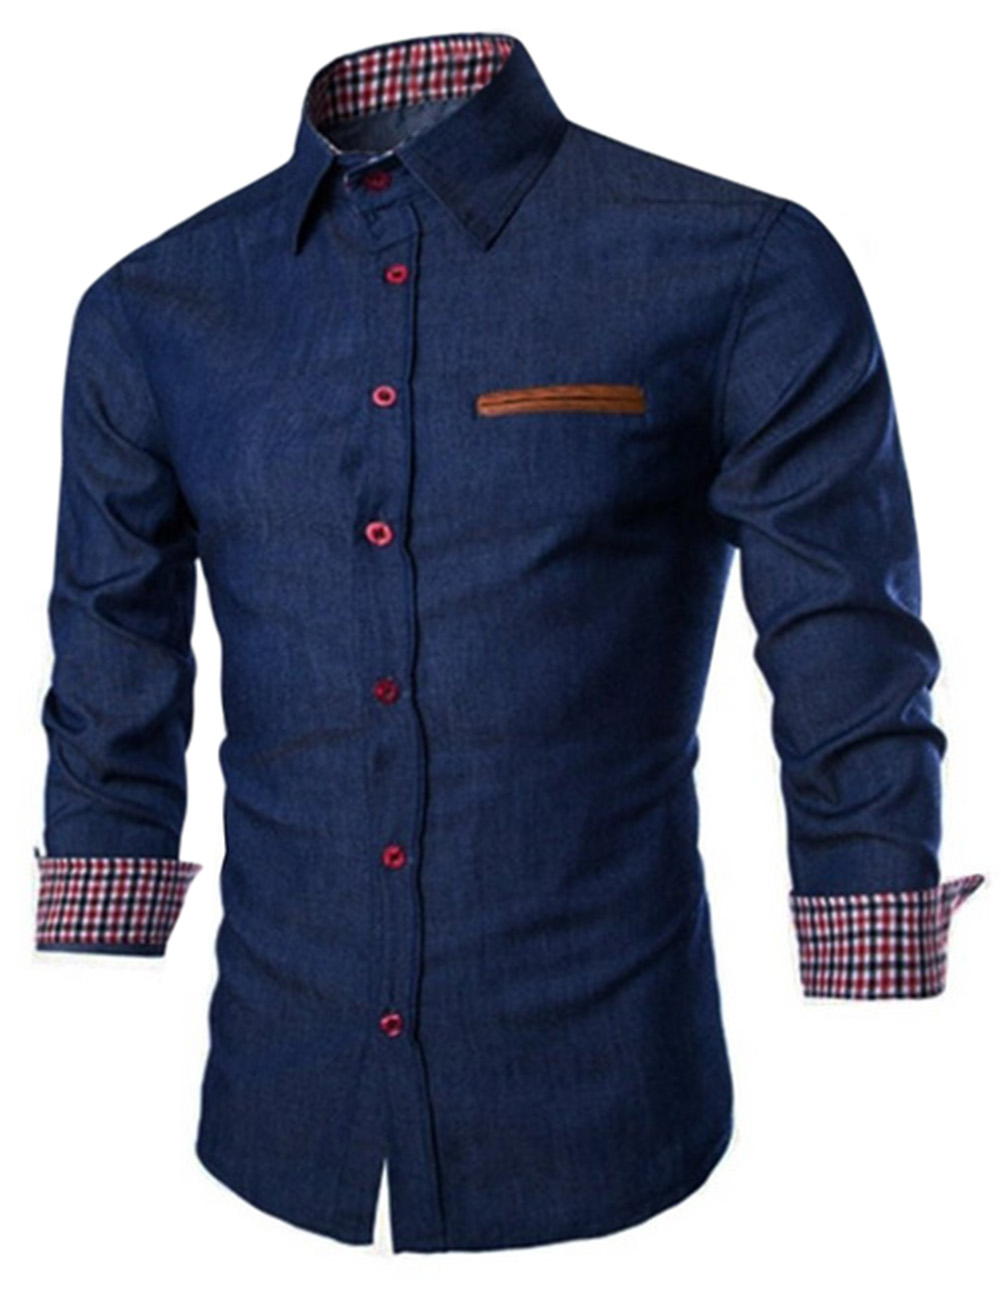 Us luxury mens denim shirts long sleeve button down slim for Mens long sleeve button down shirts